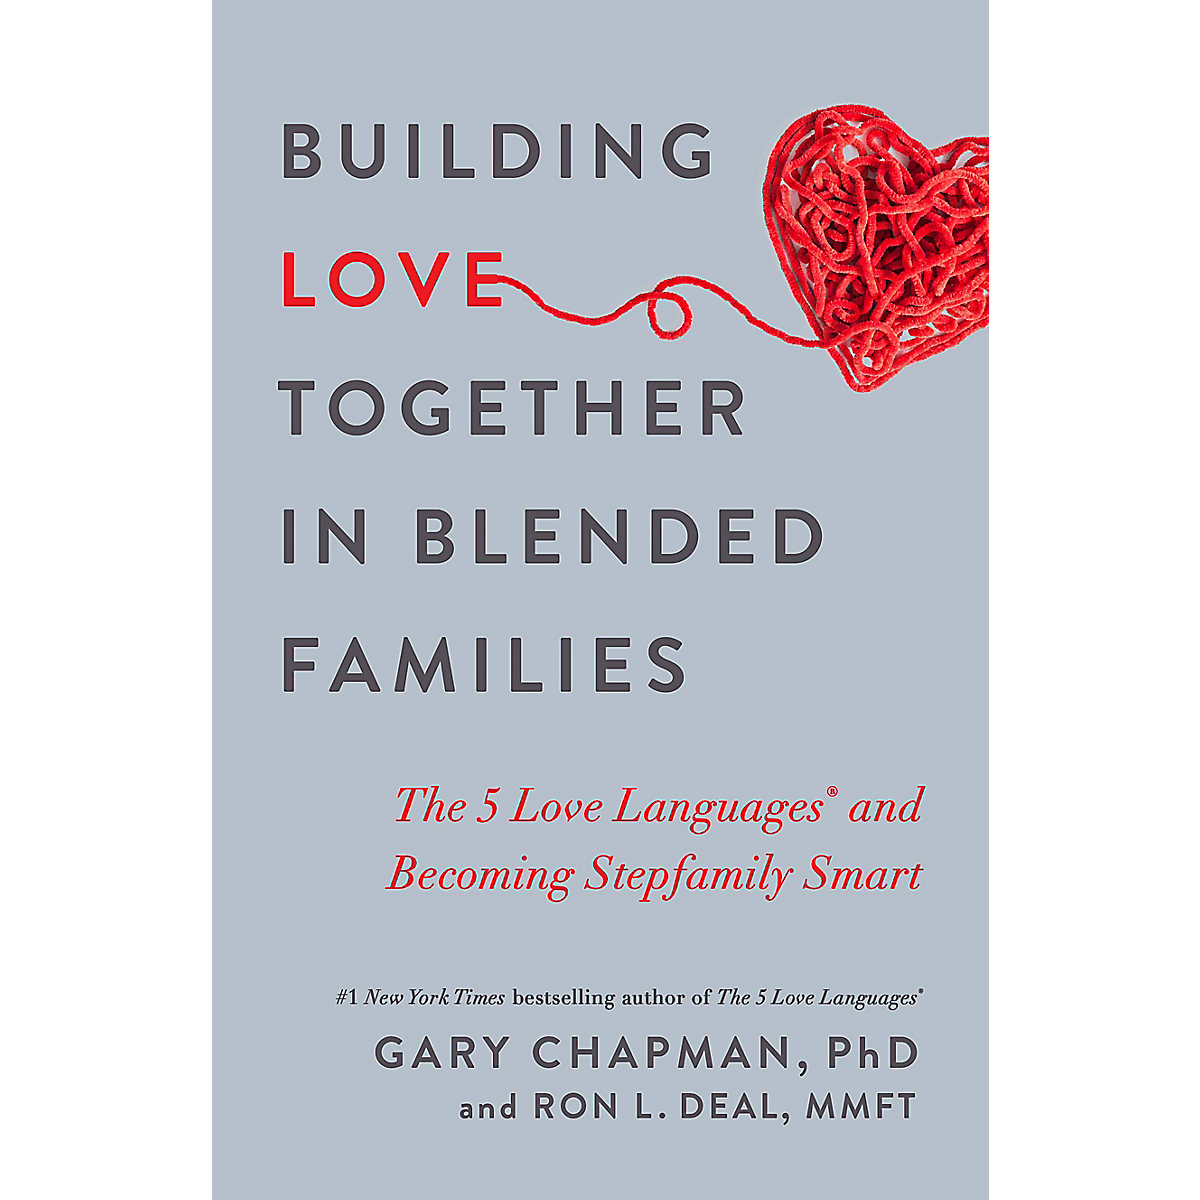 Buliding Love Together book by Dr. Gary Chapman